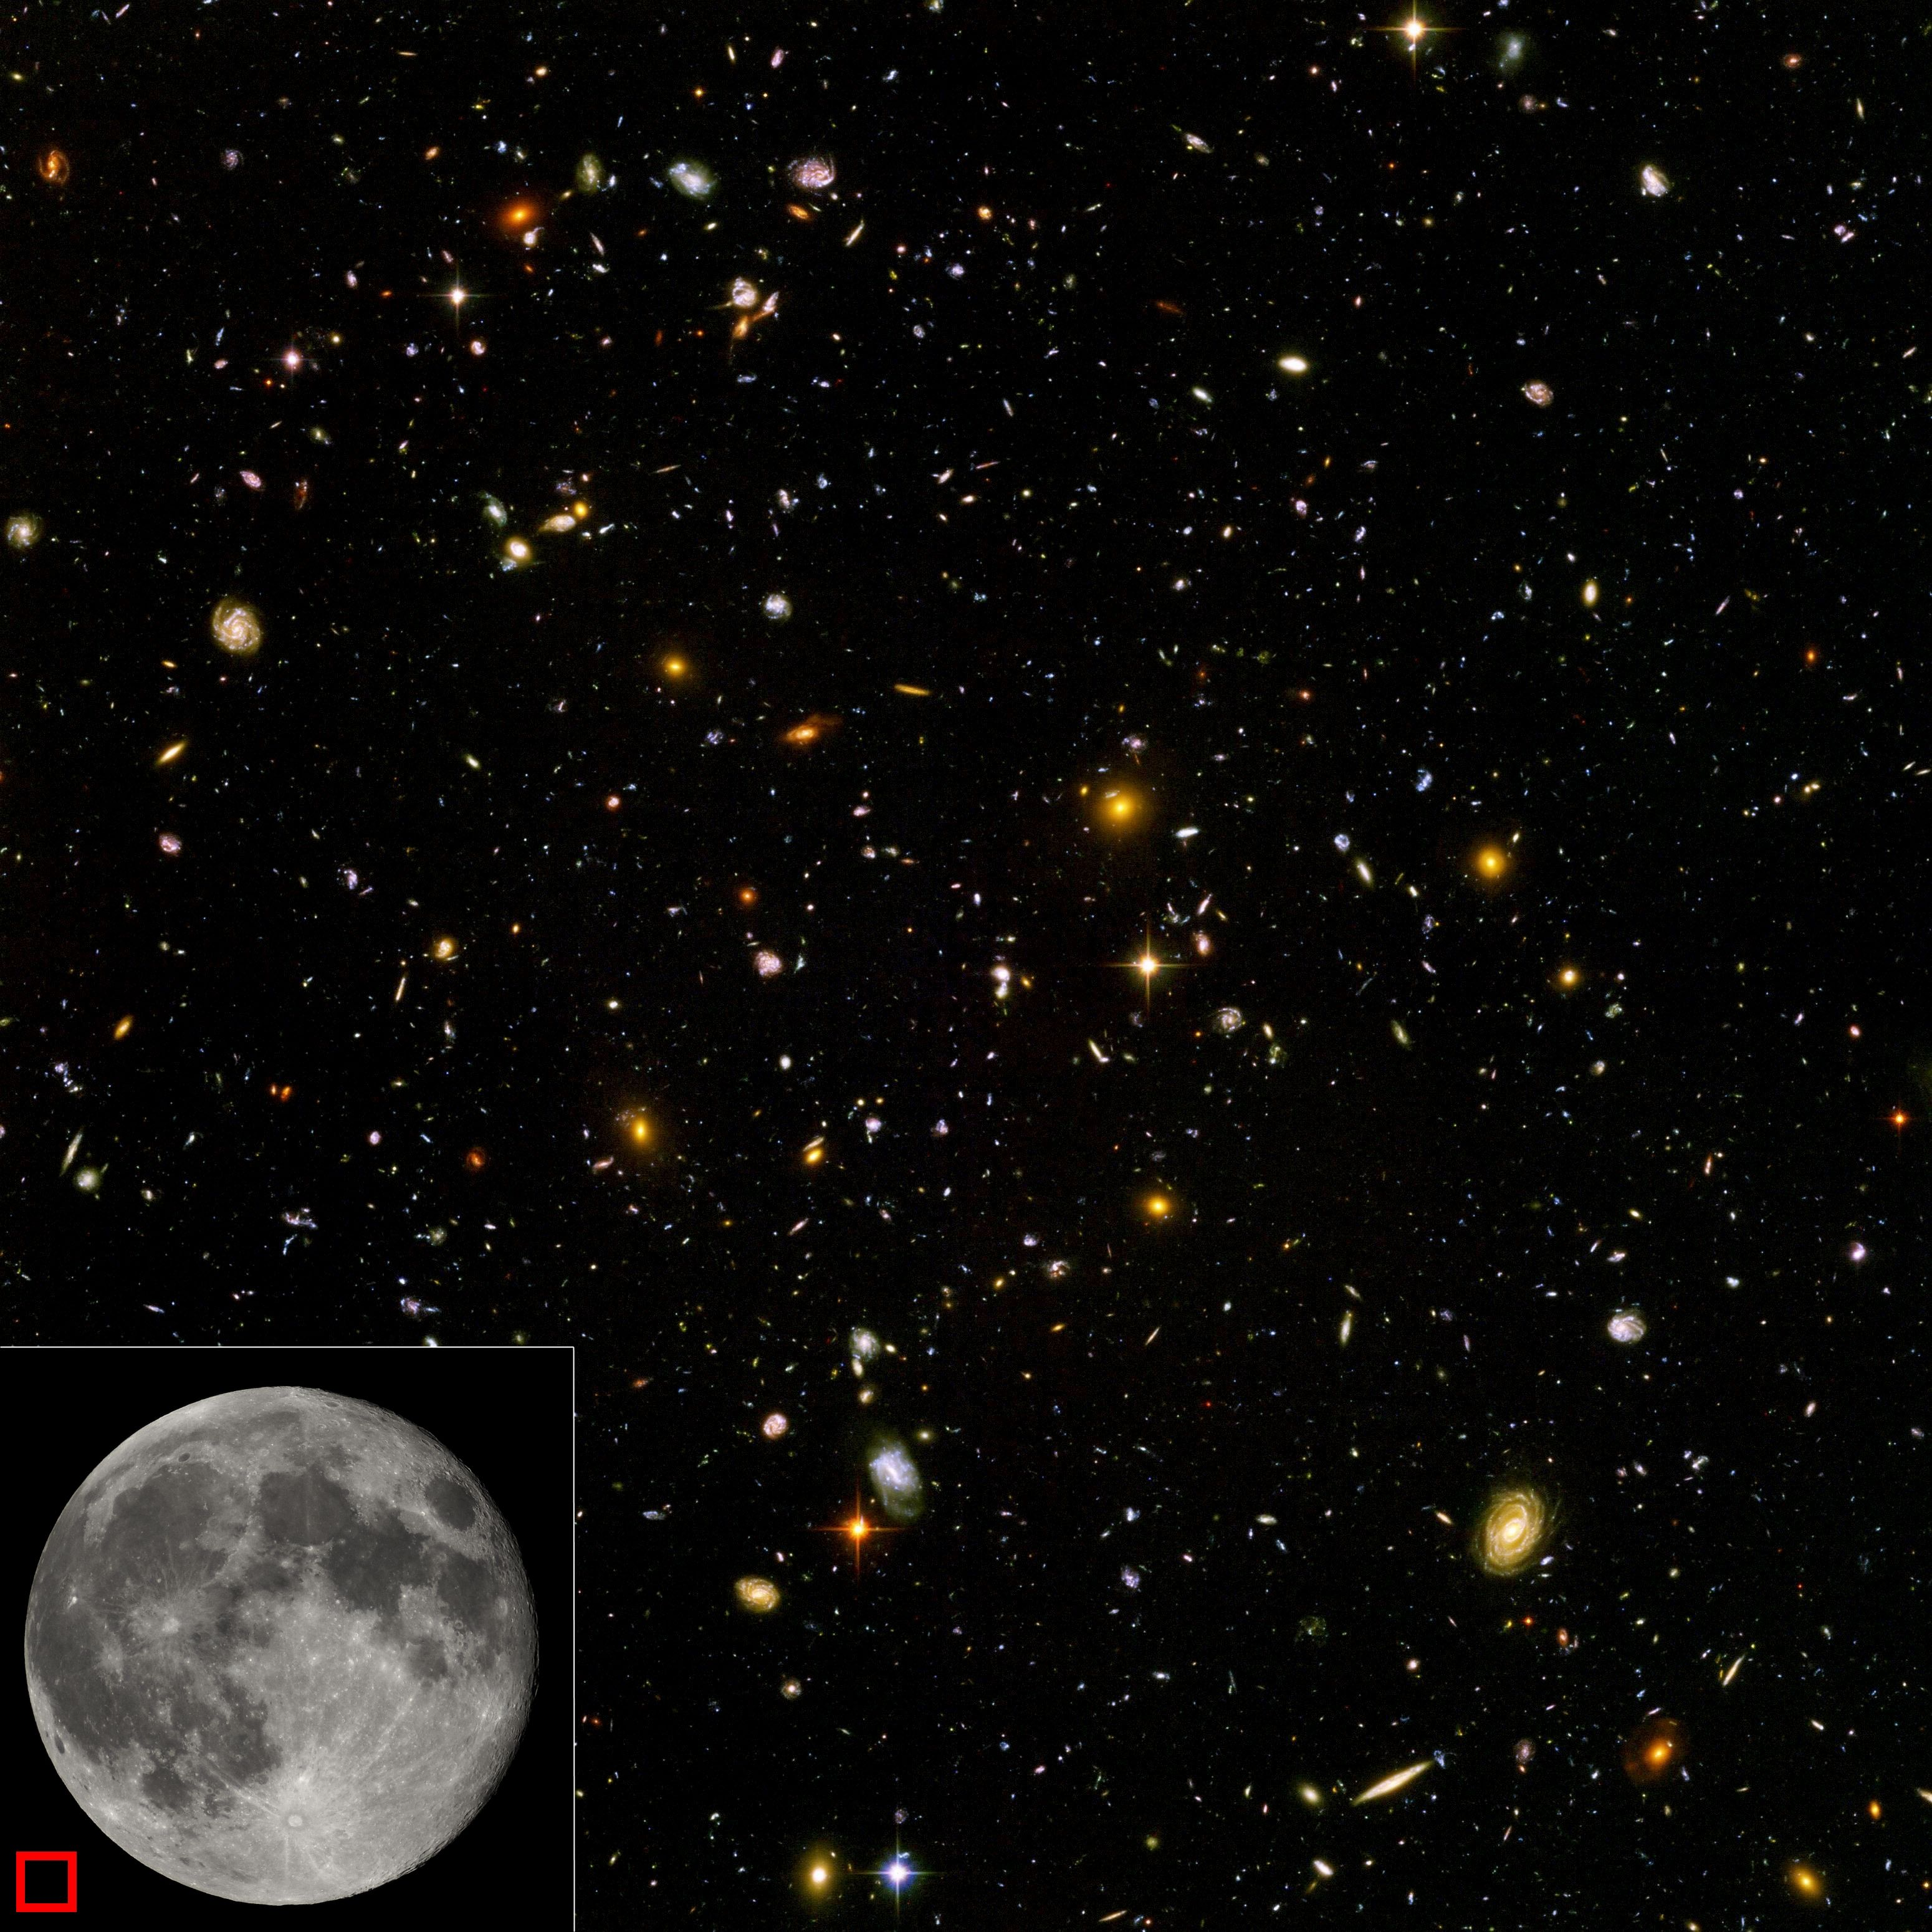 This high-resolution image of the Hubble Ultra-Deep Field shows a diverse range of galaxies, each consisting of billions of stars. The equivalent area of sky that the picture occupies is shown as a red box in the lower left corner. The smallest, reddest galaxies, about 100, are some of the most distant galaxies to have been imaged by an optical telescope, existing at the time shortly after the Big Bang.